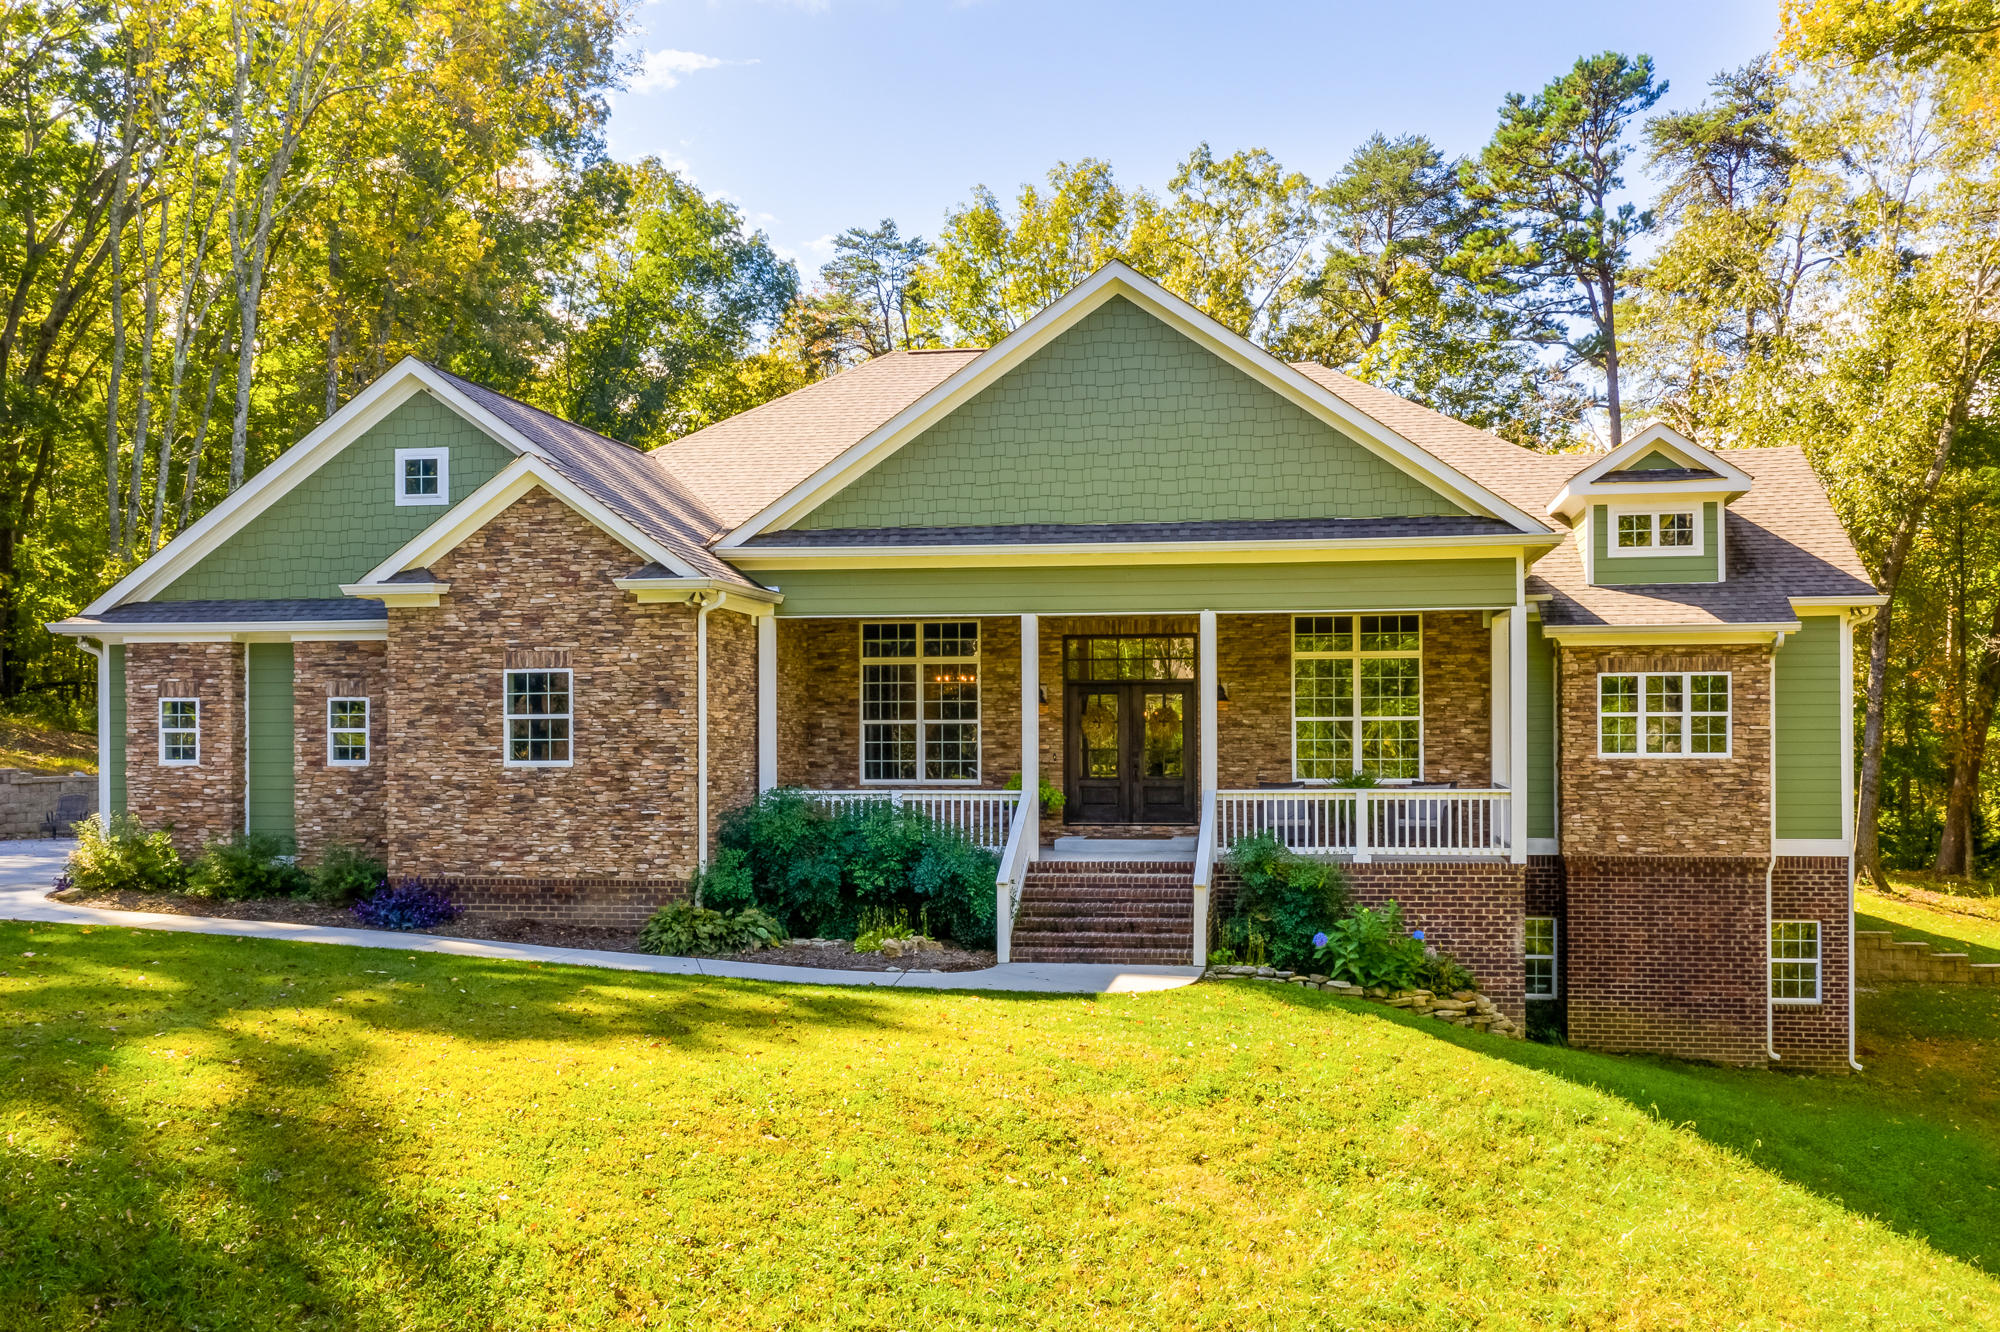 Details for 7035 Forest Spring, Ooltewah, TN 37363